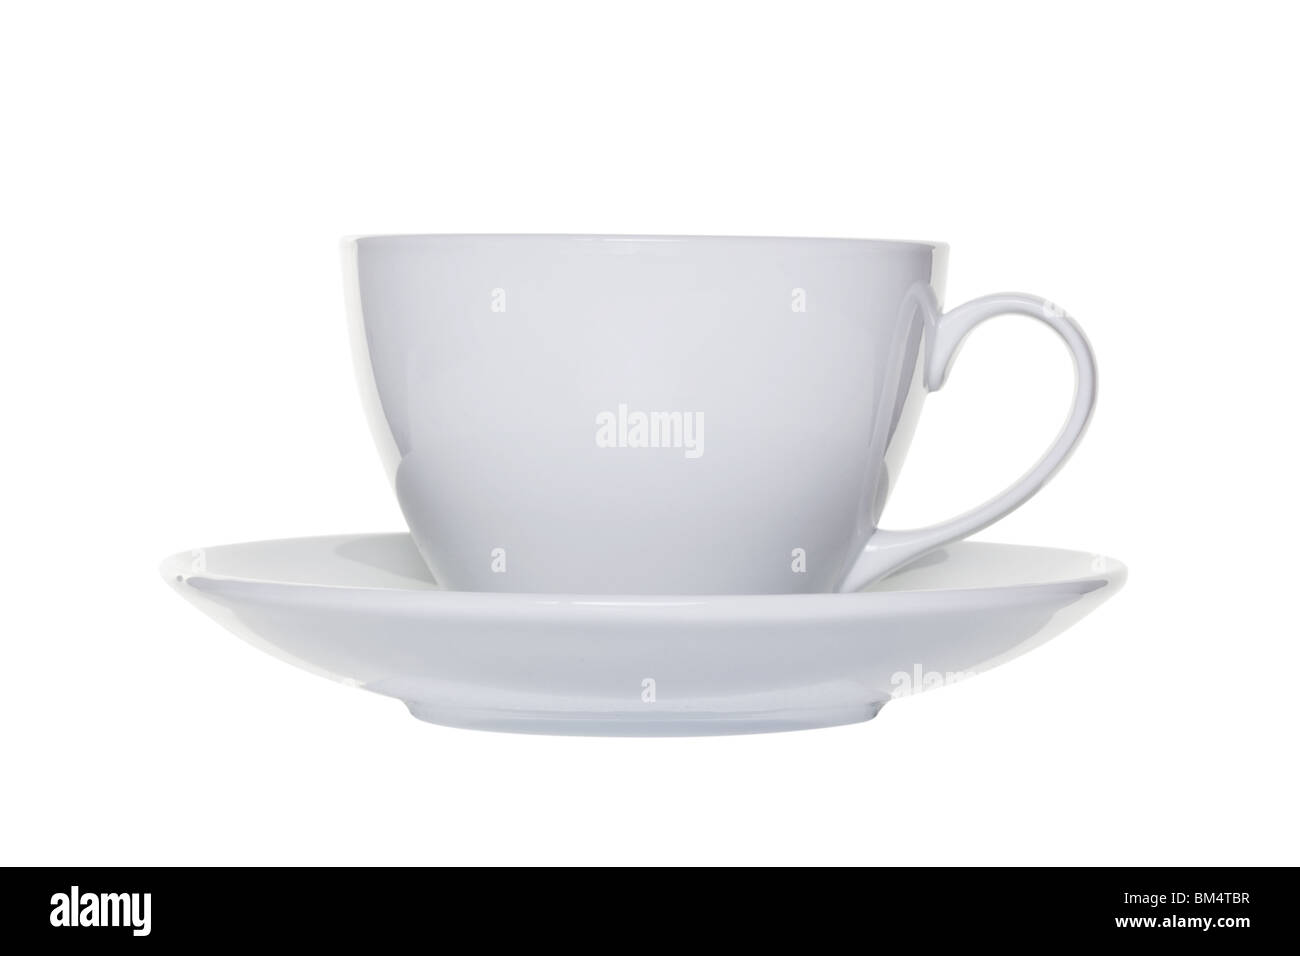 White tea cup and saucer isolated on a white background with clipping path - Stock Image